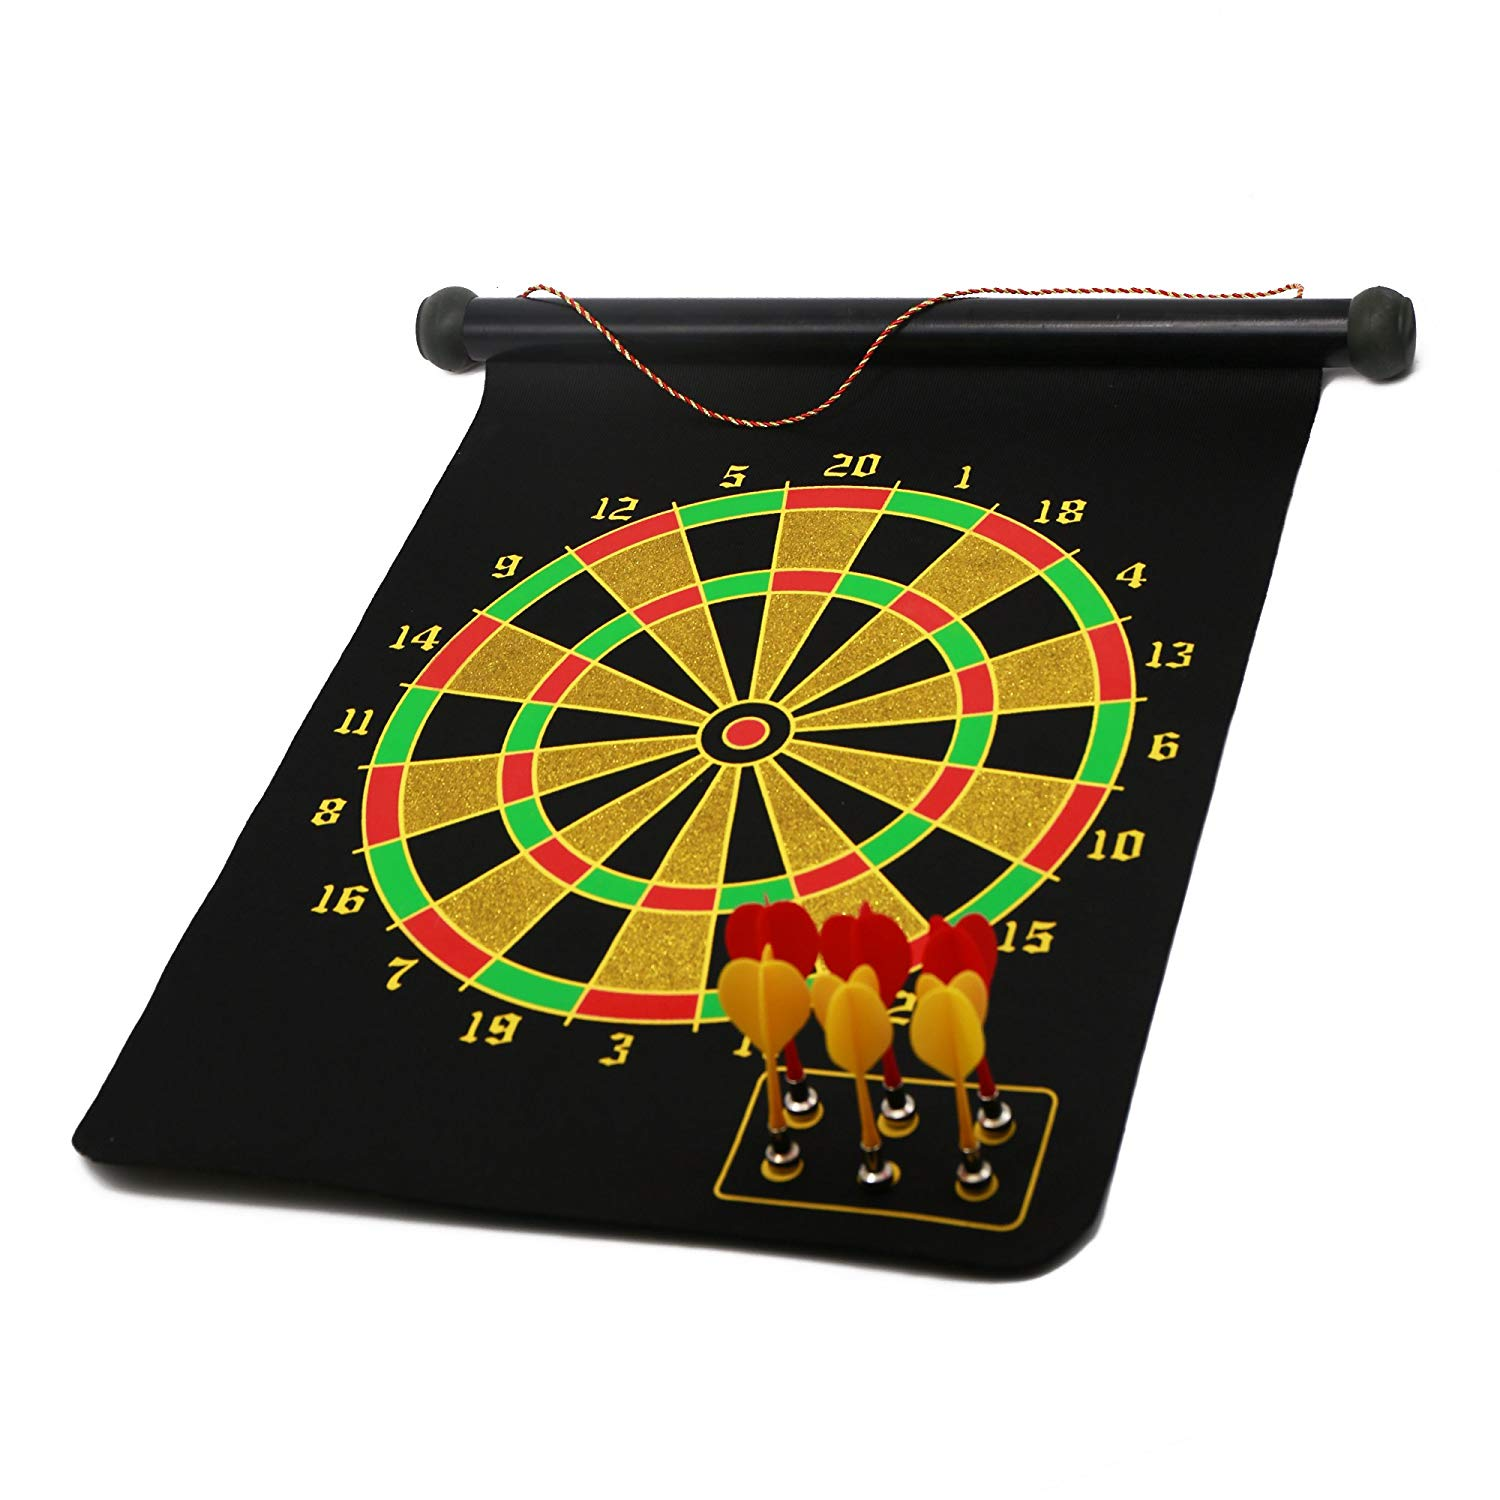 D.B.Life(Data and Better Life) Roll-up Magnetic Dart Board Set Double-Sided Hanging Dartboard with Darts